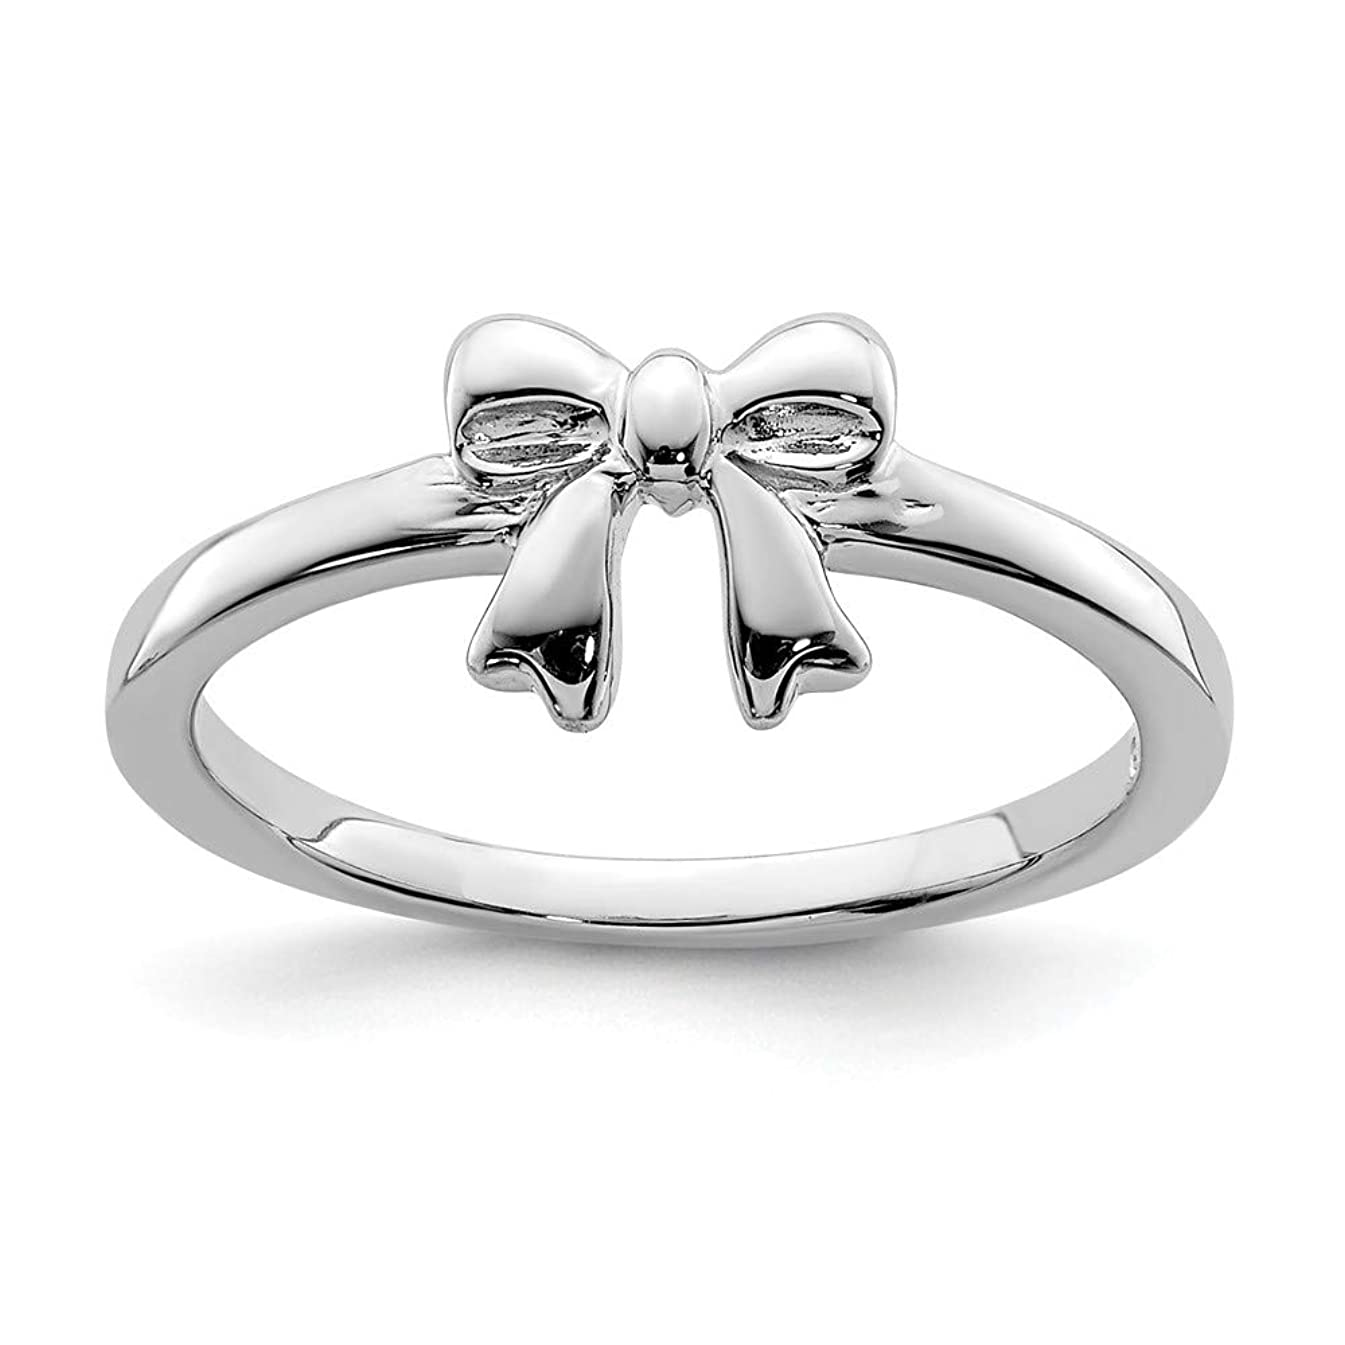 925 Sterling Silver Bow Band Ring Baby Fine Jewelry For Women Gift Set